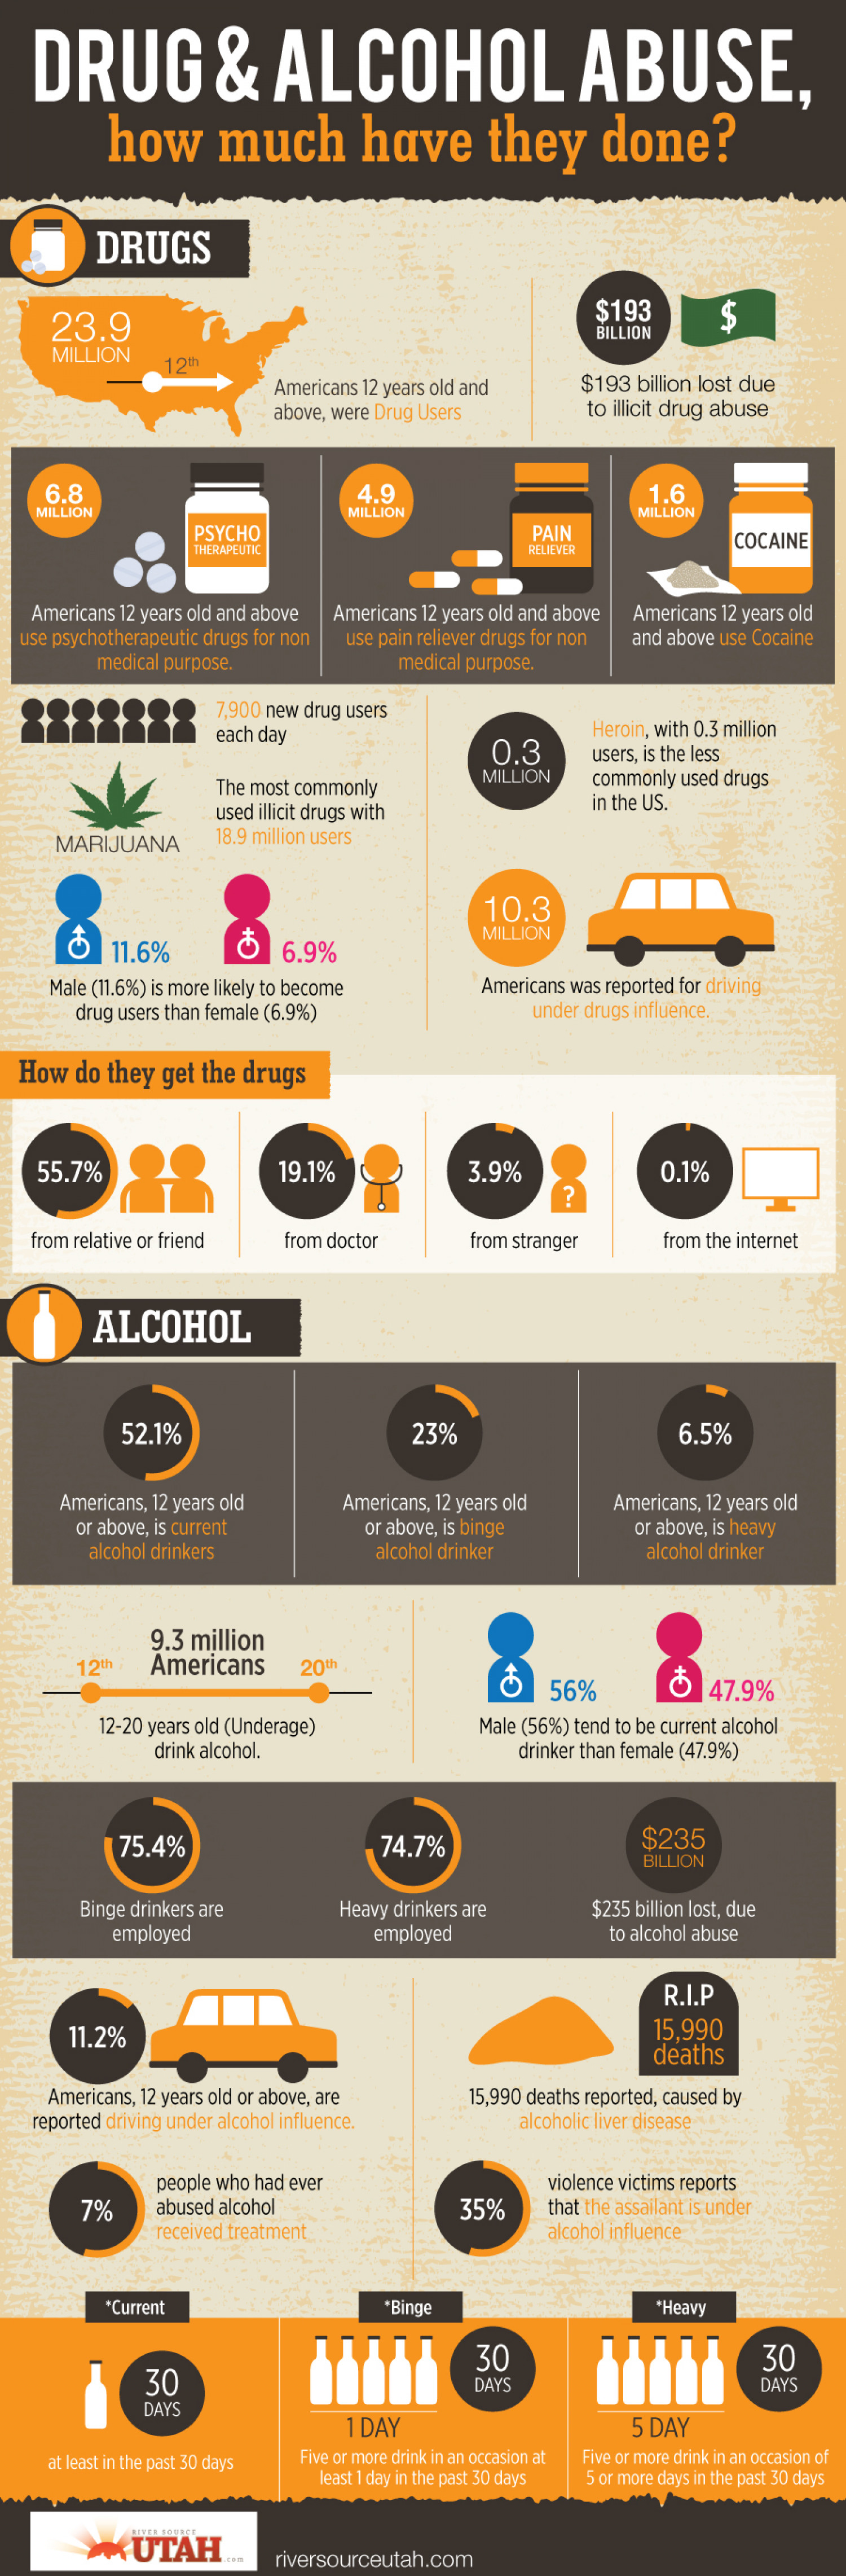 Drug & Alcohol Abuse, How Much Have They Done? Infographic